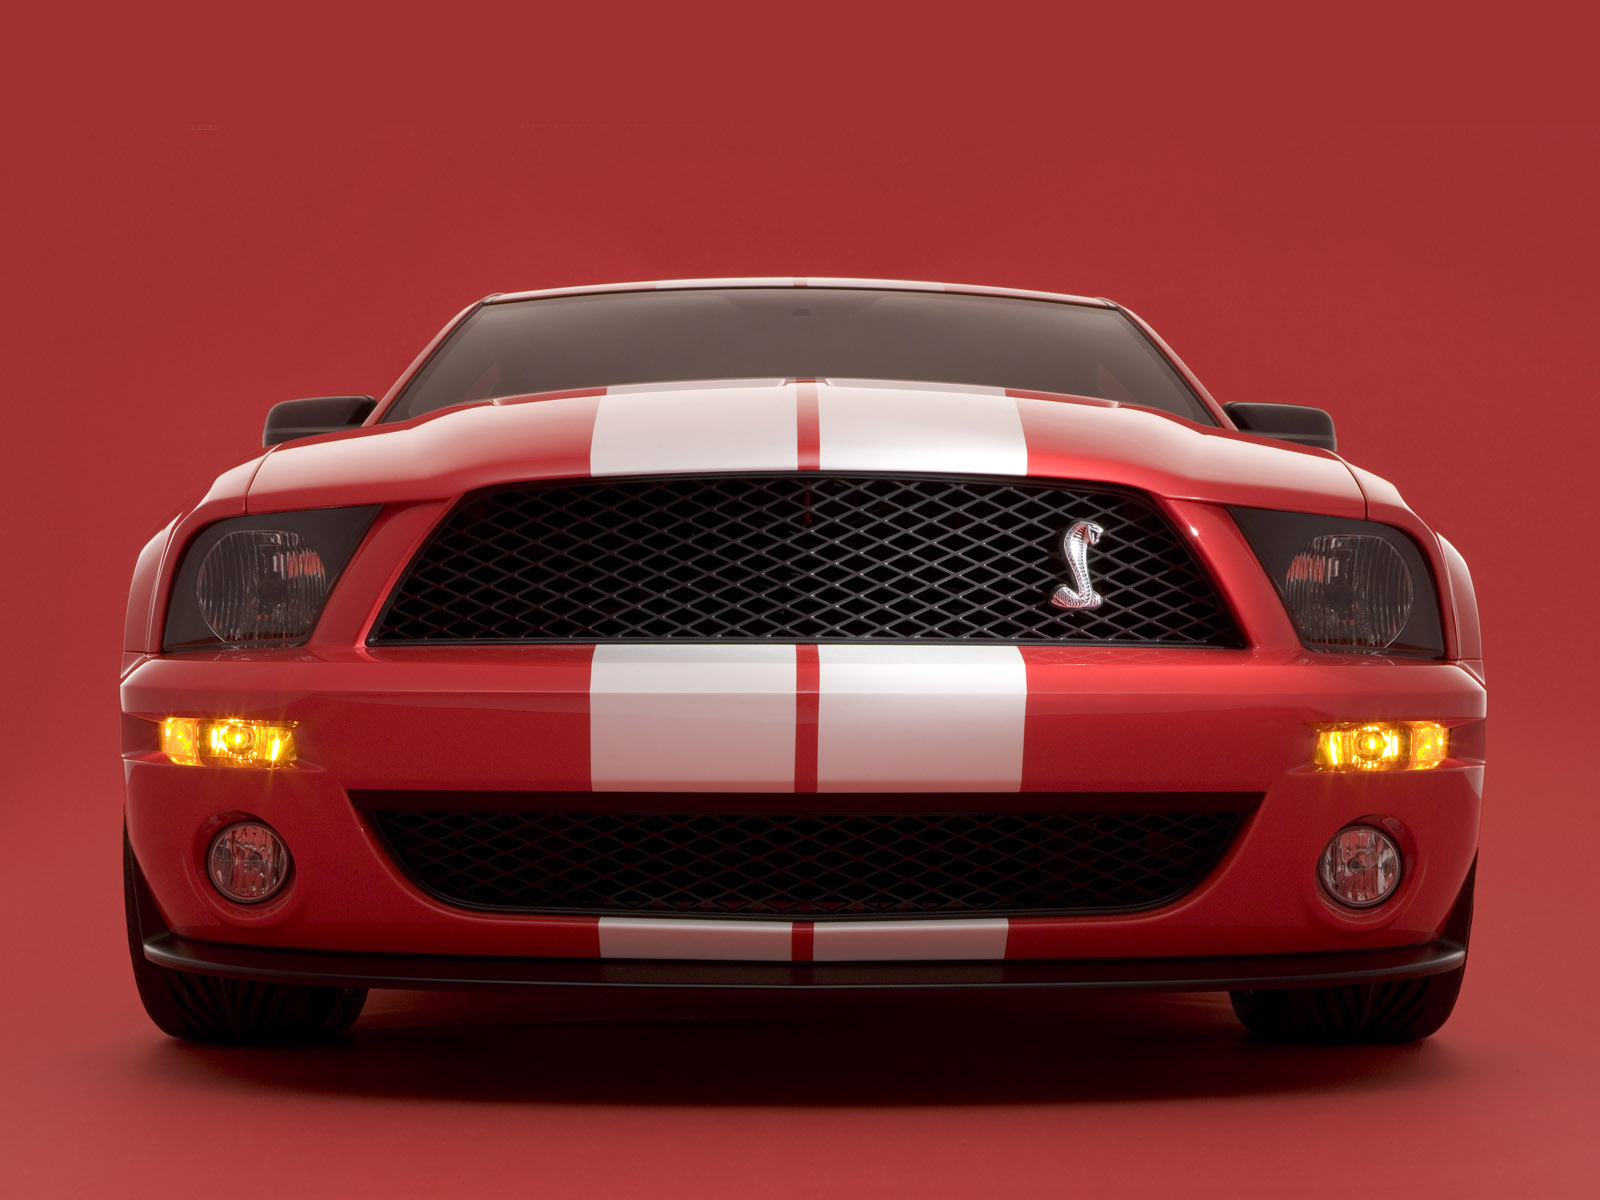 2005 SHELBY COBRA GT500 CONCEPT | Saleen Owners and ...